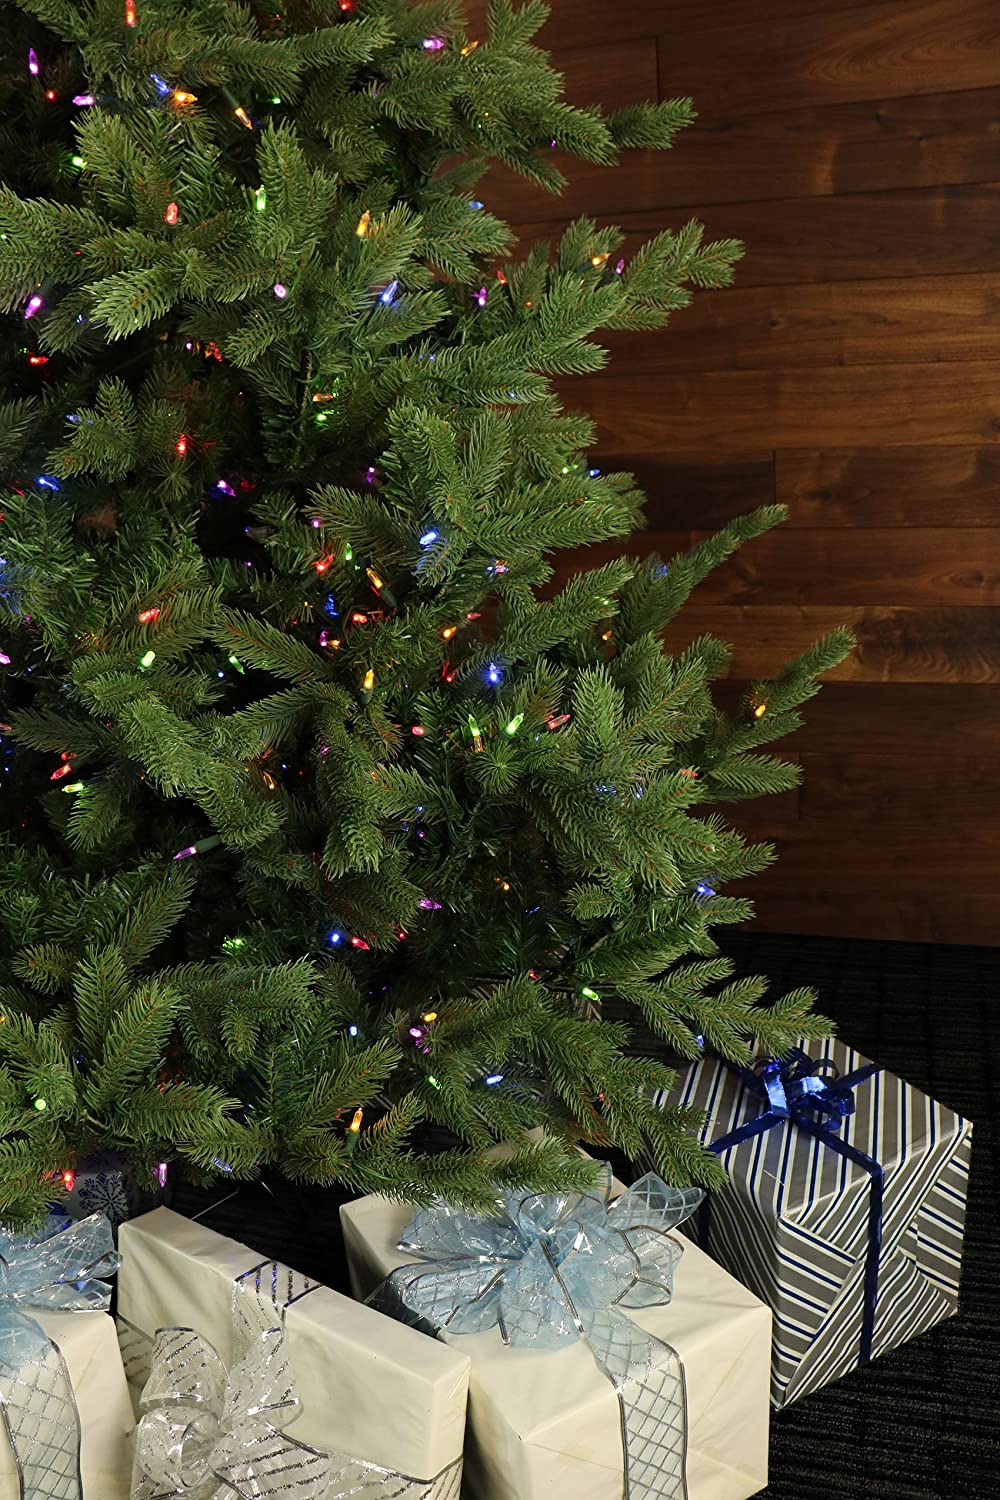 Amazon.com: 9 Ft. Foxtail Pine Christmas Tree with Multi-Color LED ...